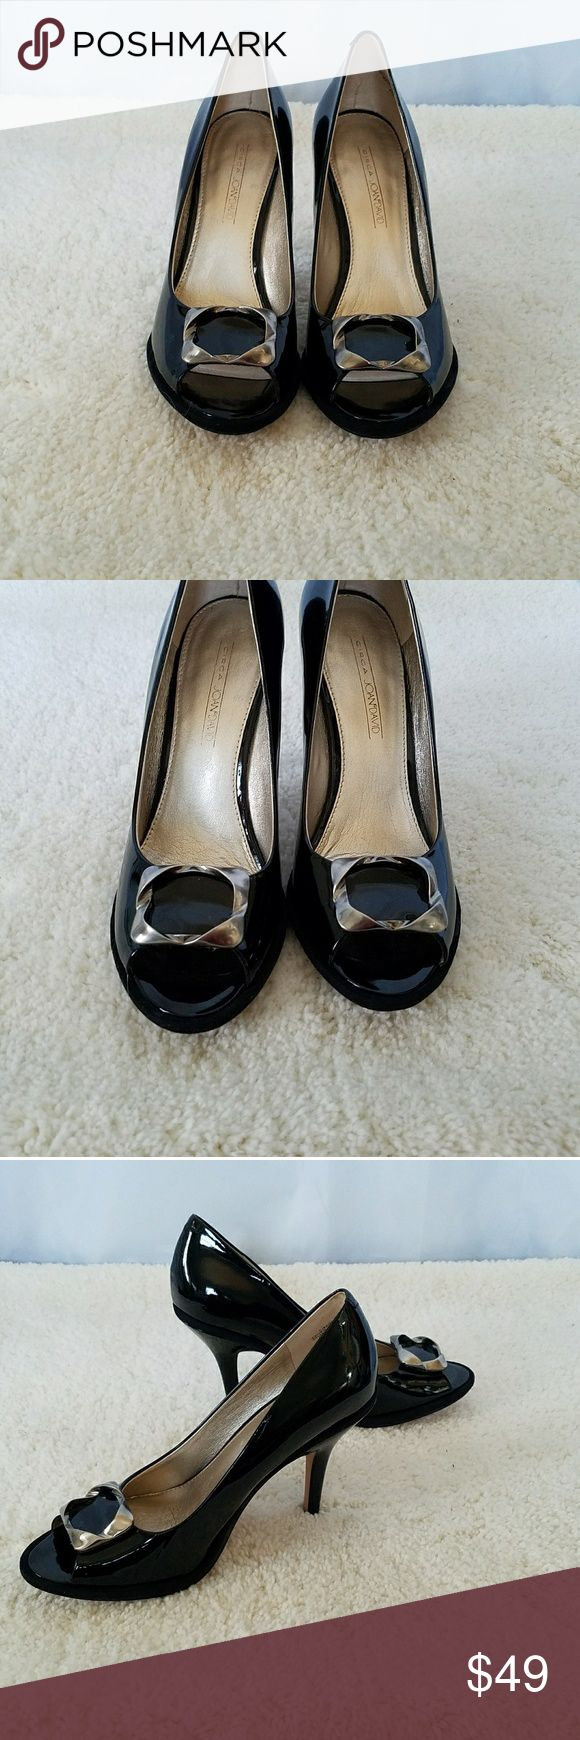 "JOAN & DAVID BLACK PATENT LEATHER PEEP TOE PUMPS JOAN & DAVID BLACK PATENT LEATHER CAREER OPEN  TOE CAREER HEELS with pewter hardware over toe area,  Size 7.5. This on trend shoe has a patent leather upper and the balance is man made. Has a 4"" heel and a 1/4"" platform. All measurements are approximate and taken flat.  So polished and professional for the office. Barely used! Joan & David Shoes Heels"